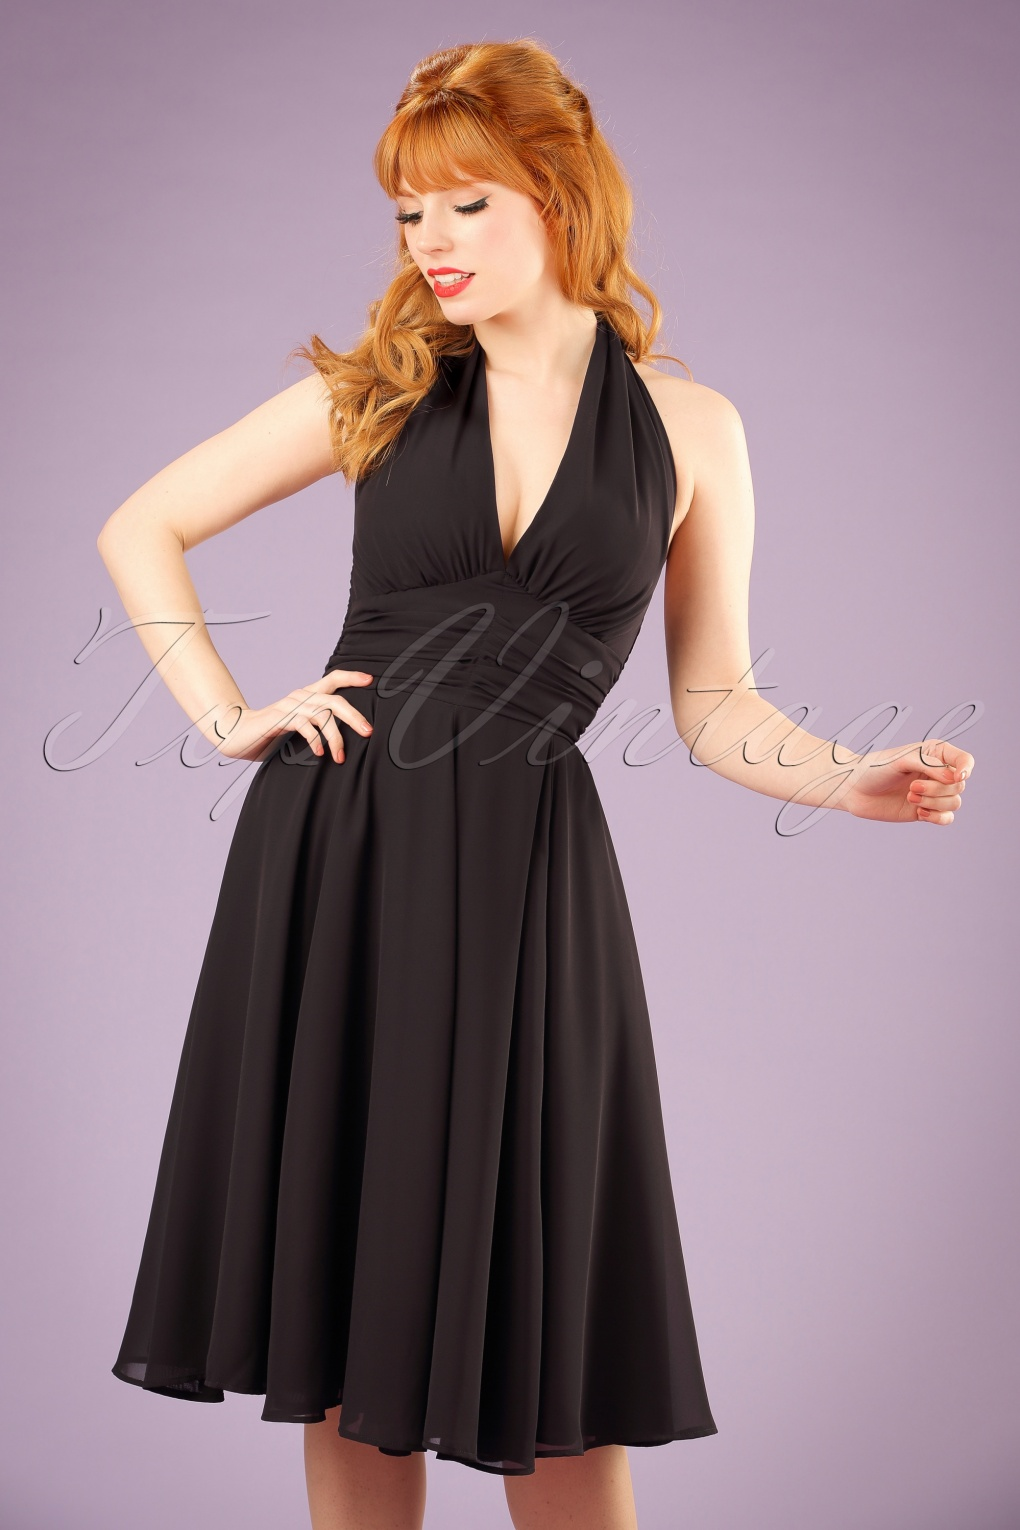 1950s Costumes- Poodle Skirts, Grease, Monroe, Pin Up, I Love Lucy 50s Monroe Dress in Black £24.95 AT vintagedancer.com